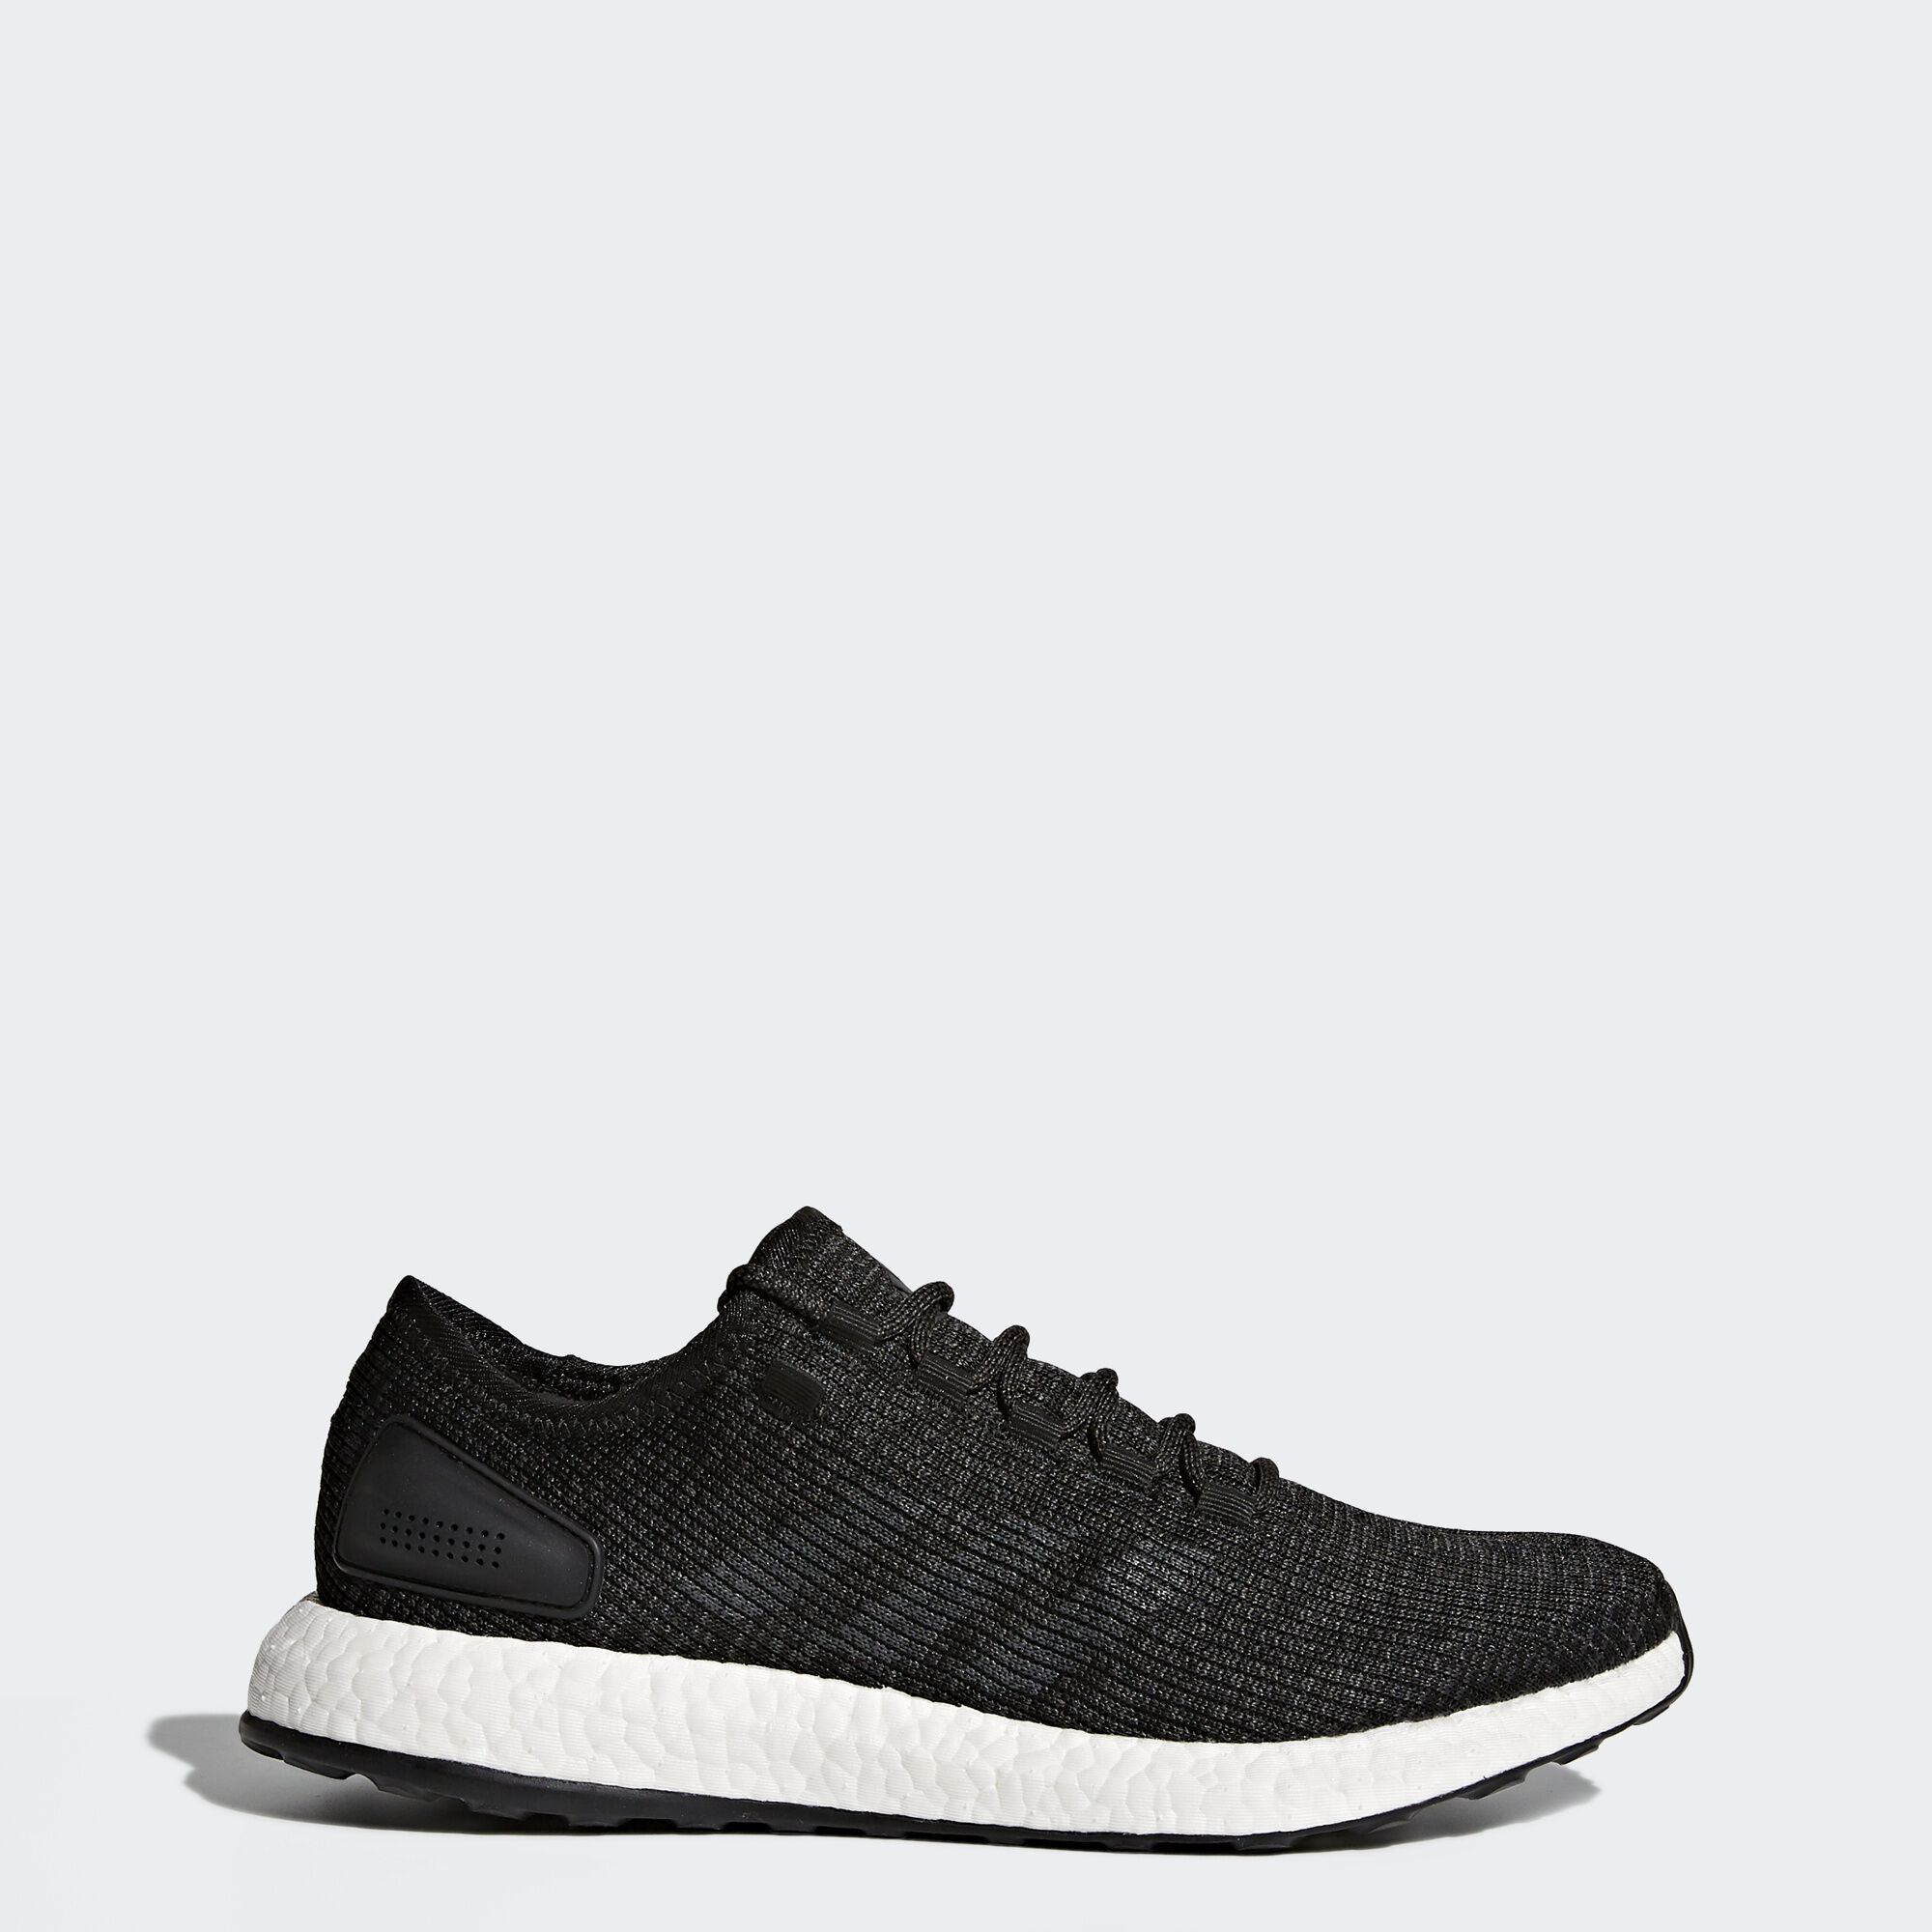 adidas - Pure Boost Shoes Core Black/Dark Grey Heather BA8899. Men Running